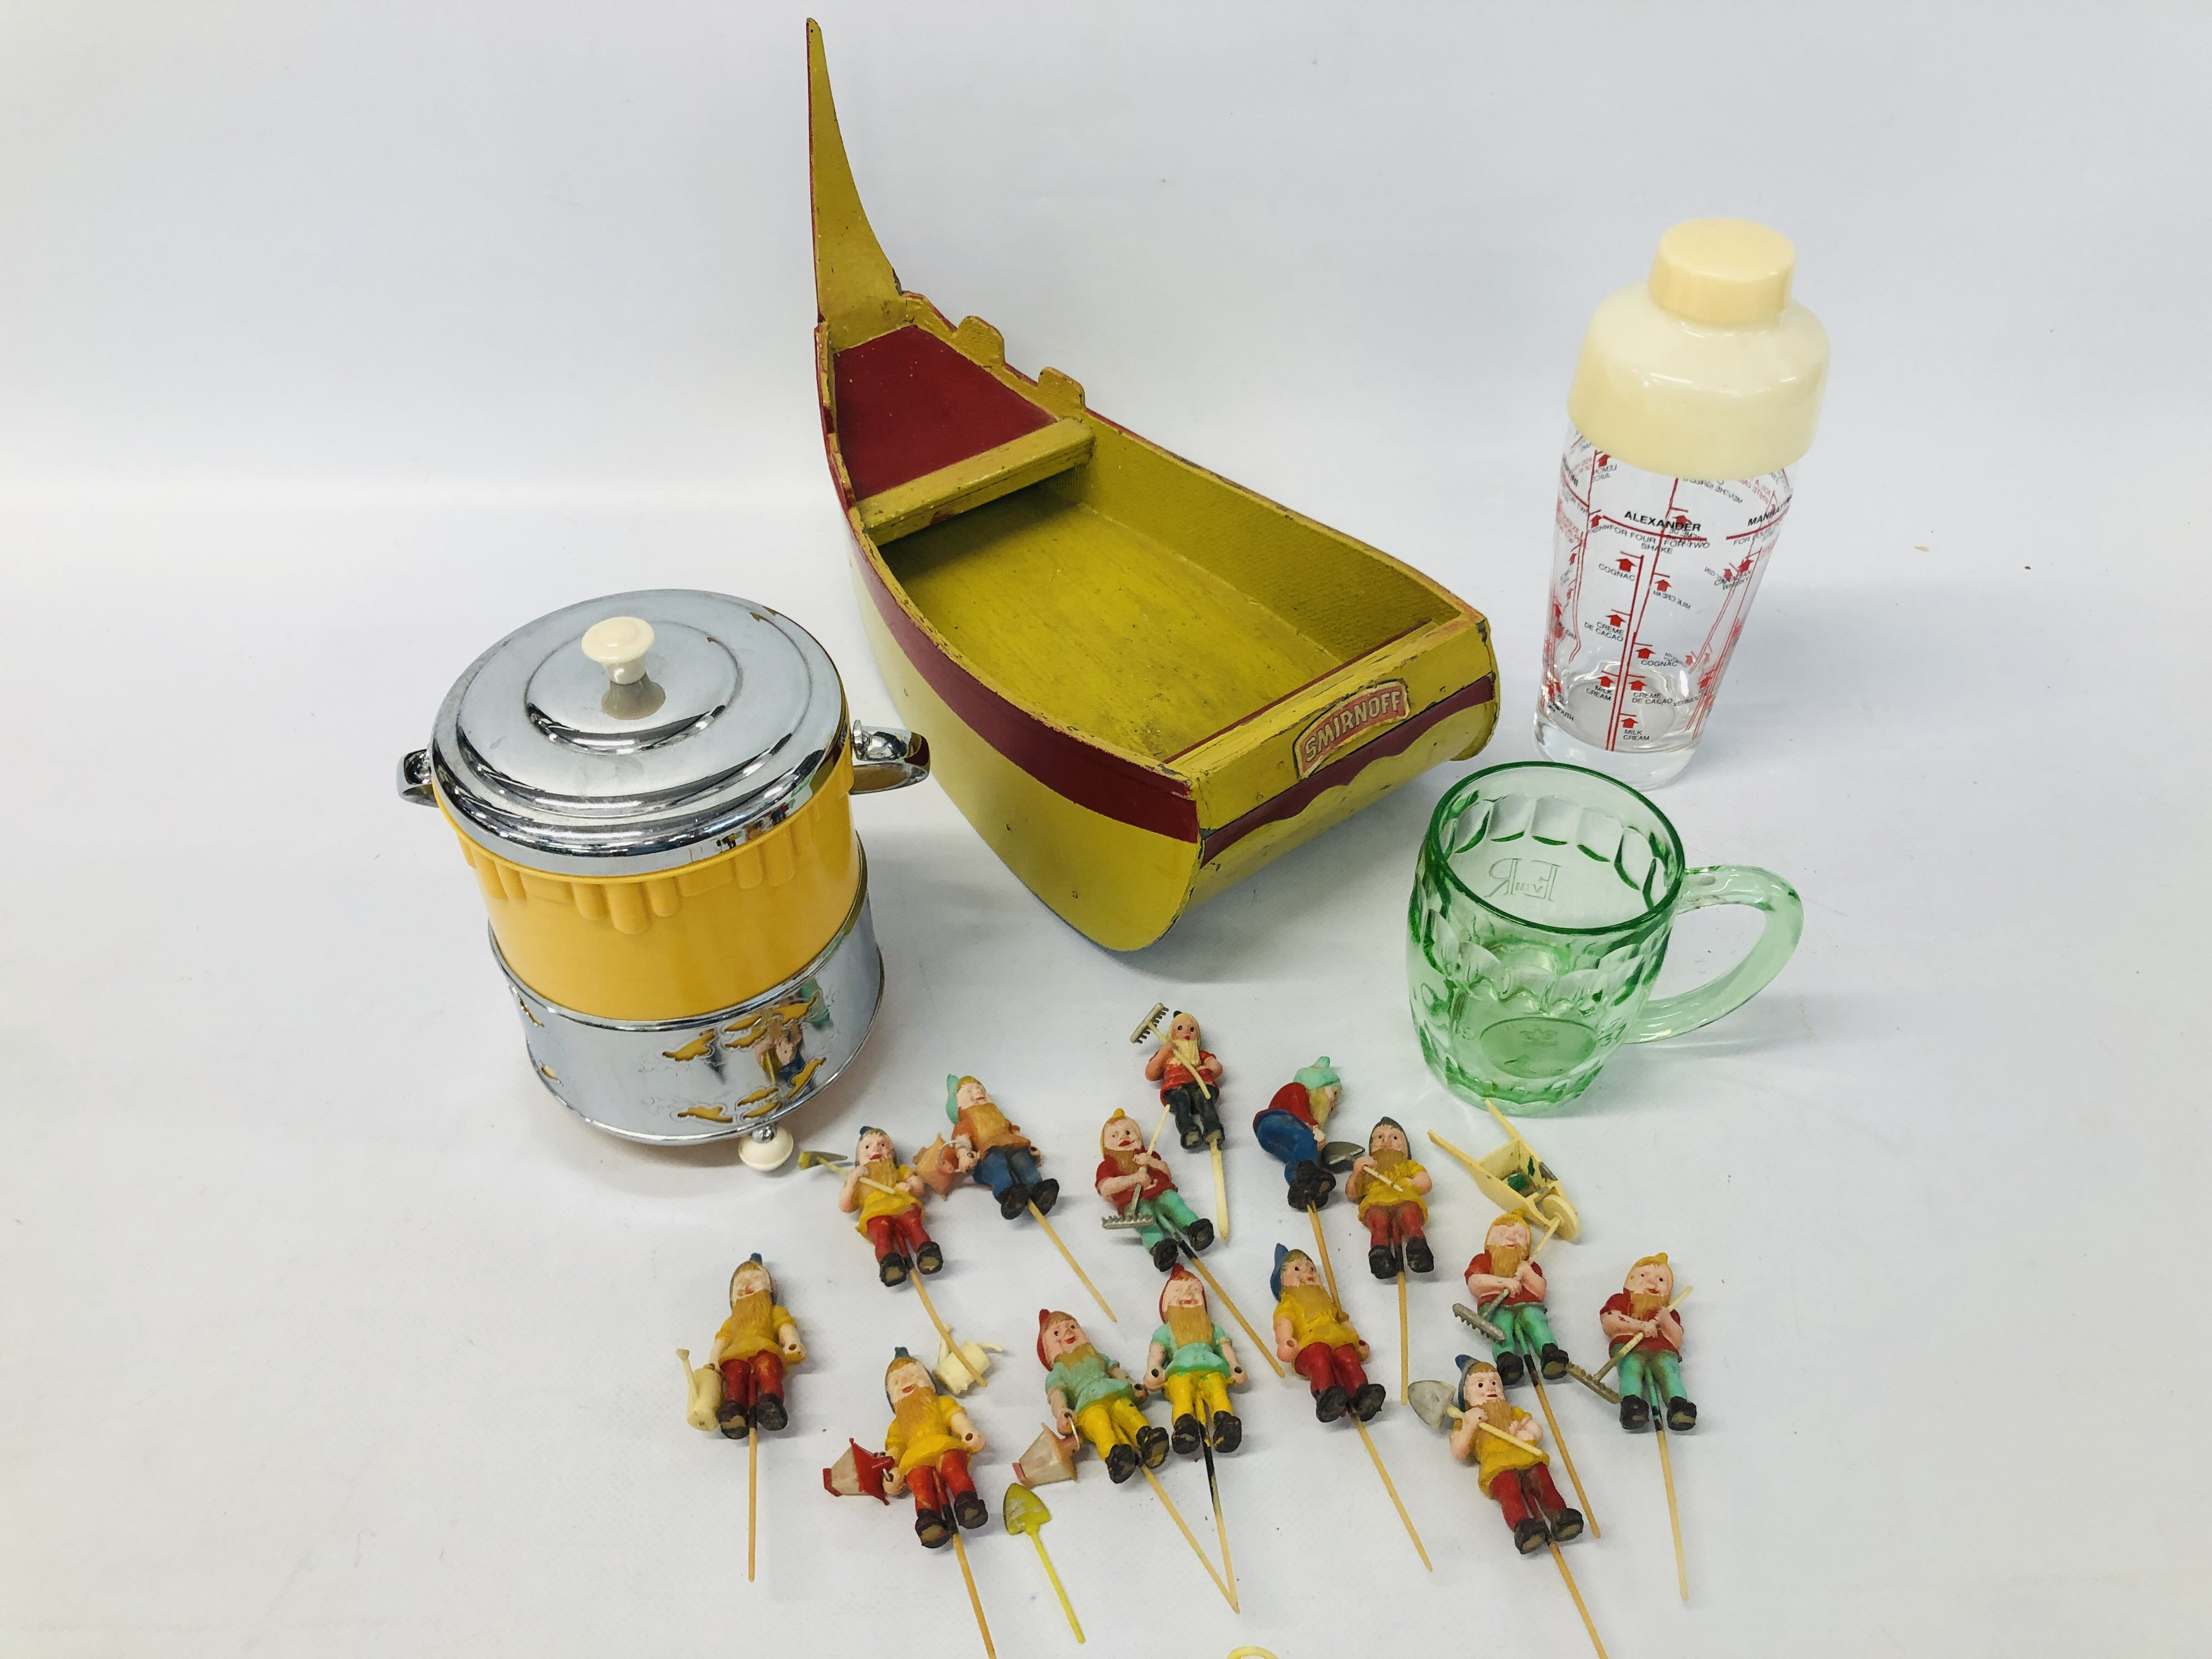 VINTAGE SMIRNOFF DISPLAY IN THE FORM OF A BOAT ALONG WITH A COLLECTION OF GNOME COCKTAIL STICKS,